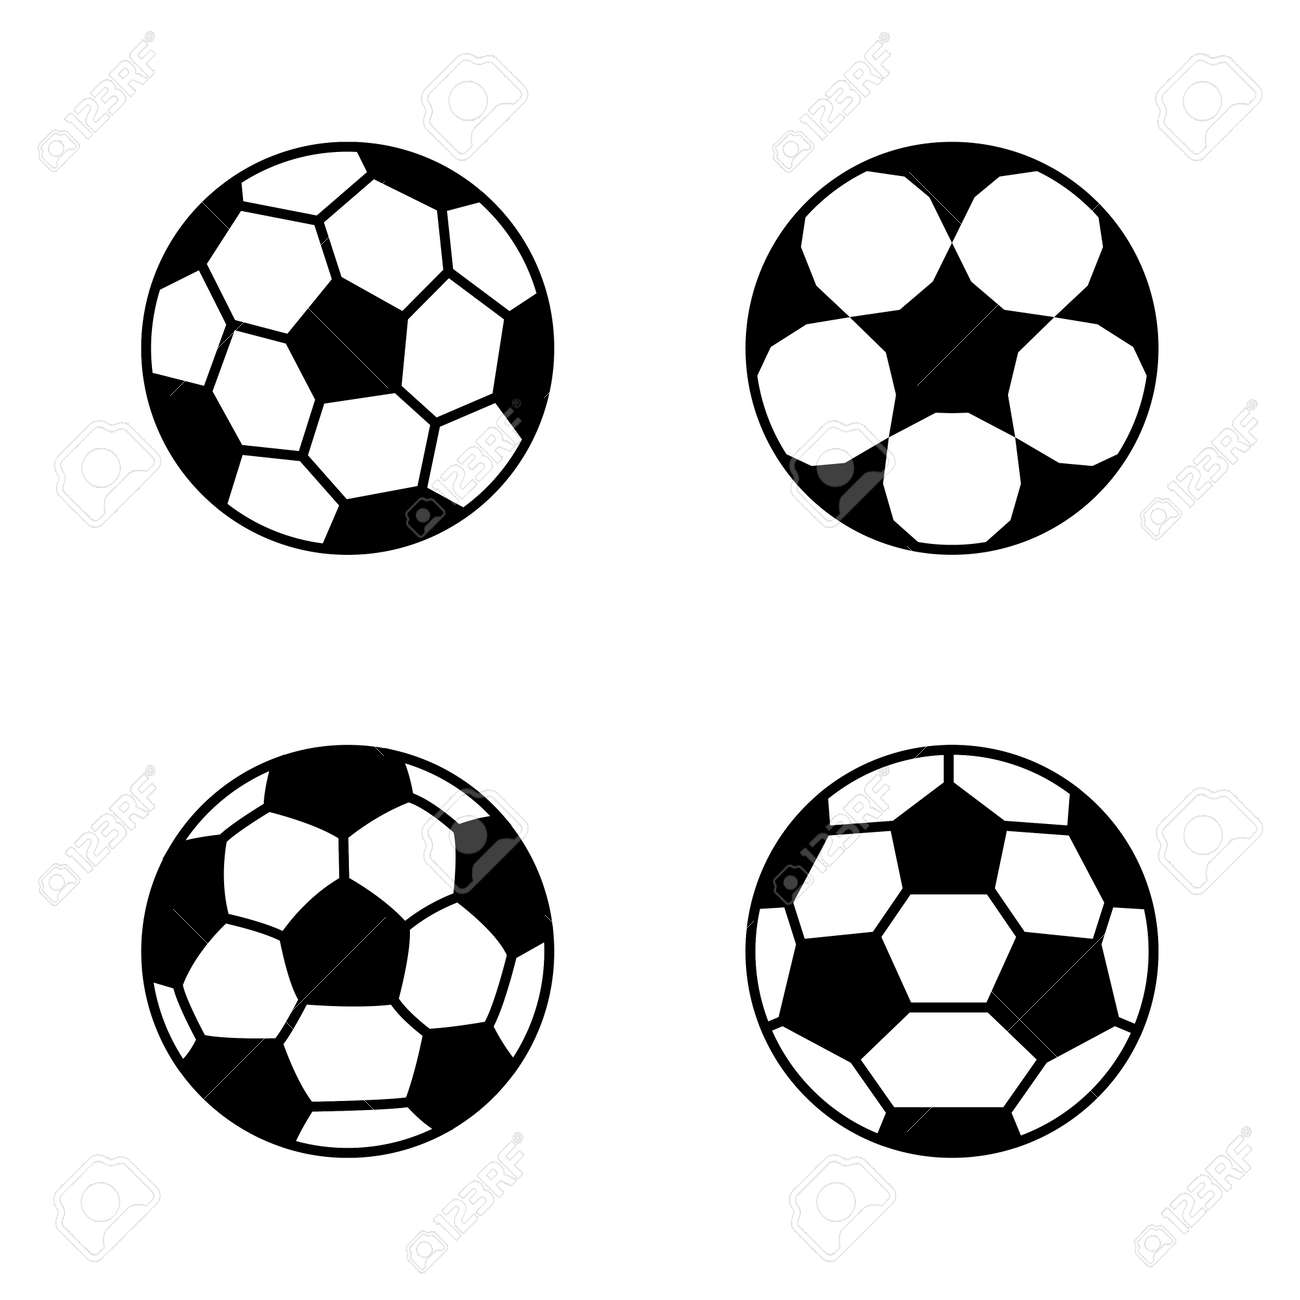 Soccer ball, simple style, icon. Vector illustration isolated on white background. - 169772081